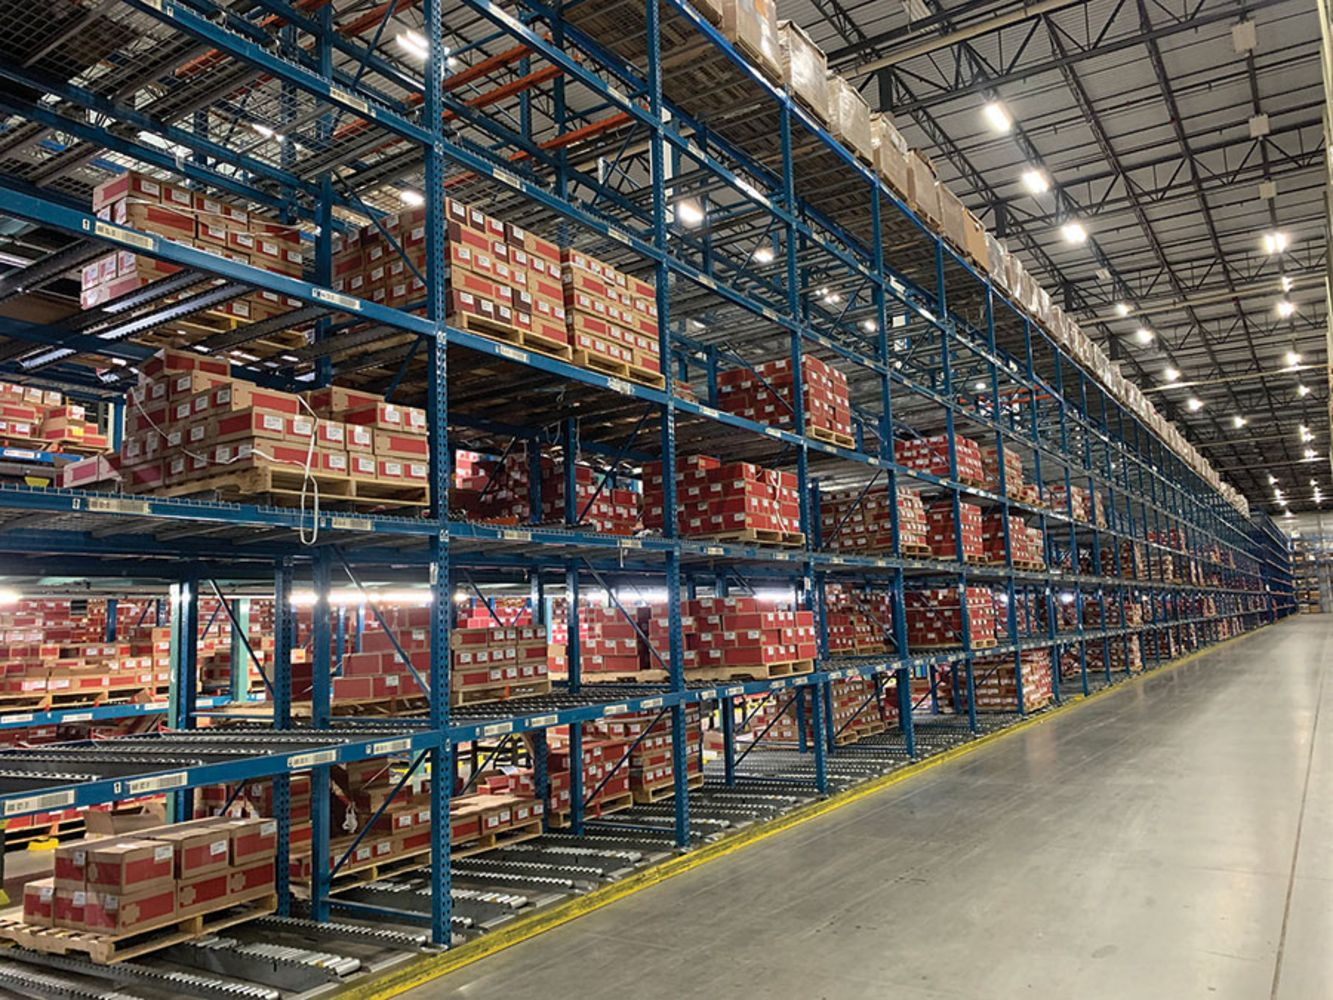 1,000,000+ SF DISTRIBUTION CENTER - DAY 2 of Huge 2-Day Auction - Pallet Racking, Forklifts, Pick Modules, Shuttle Systems